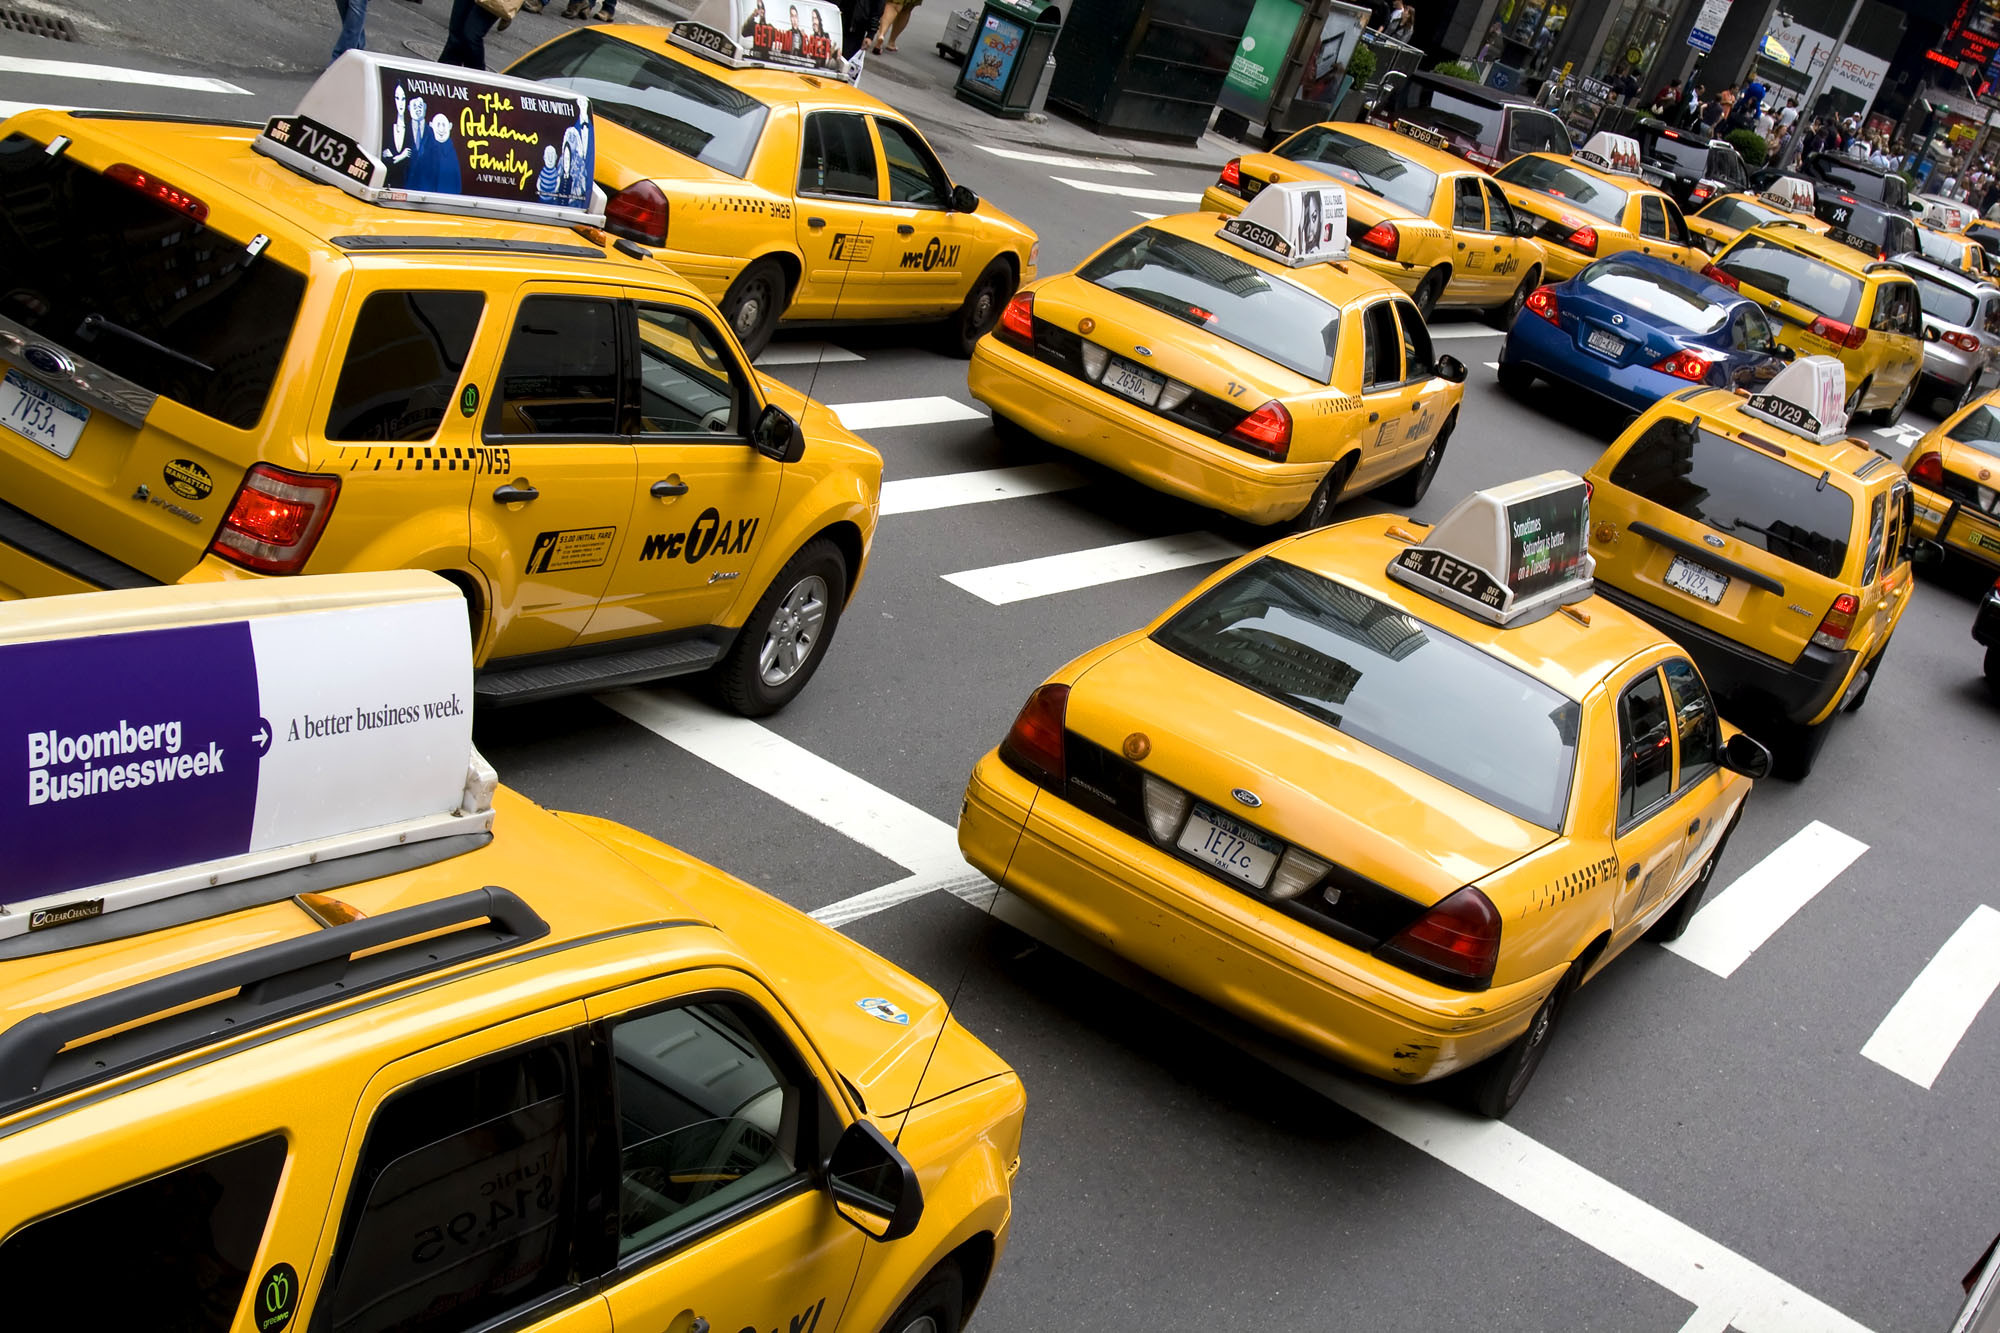 Taxis to sport black boxes, cameras in new safety program